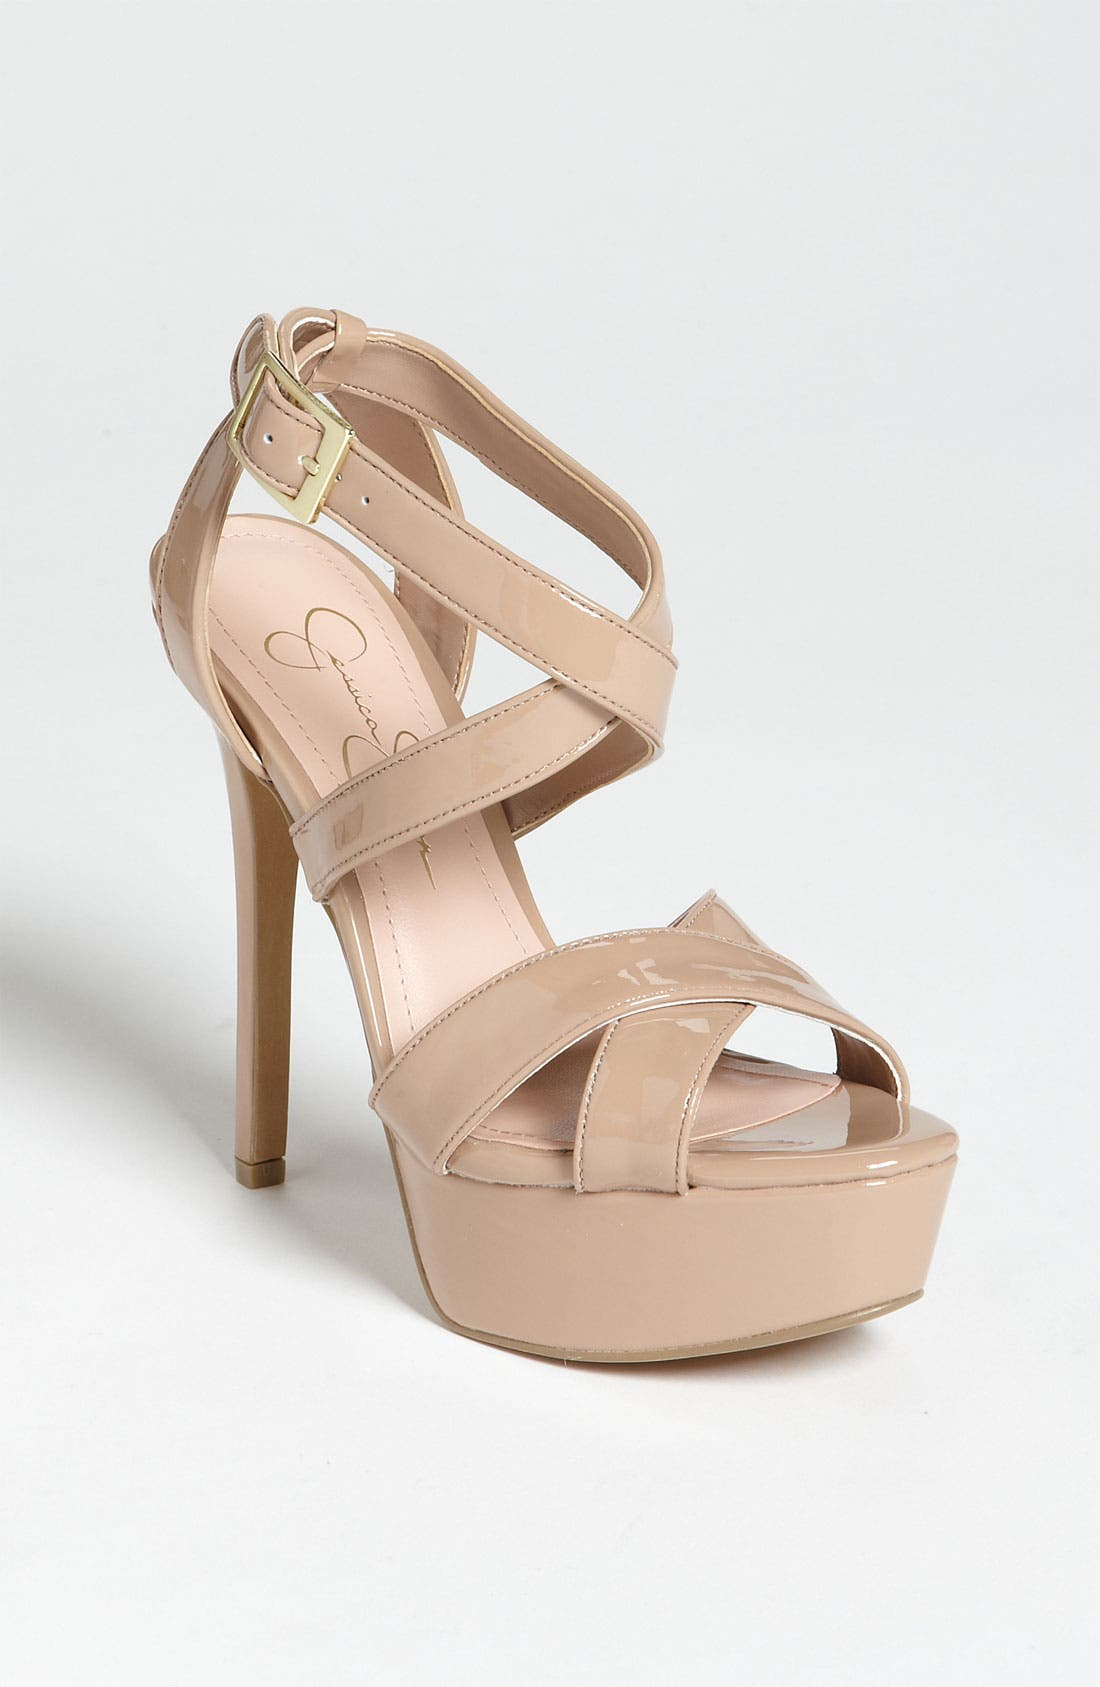 Alternate Image 1 Selected - Jessica Simpson 'Blairee' Sandal